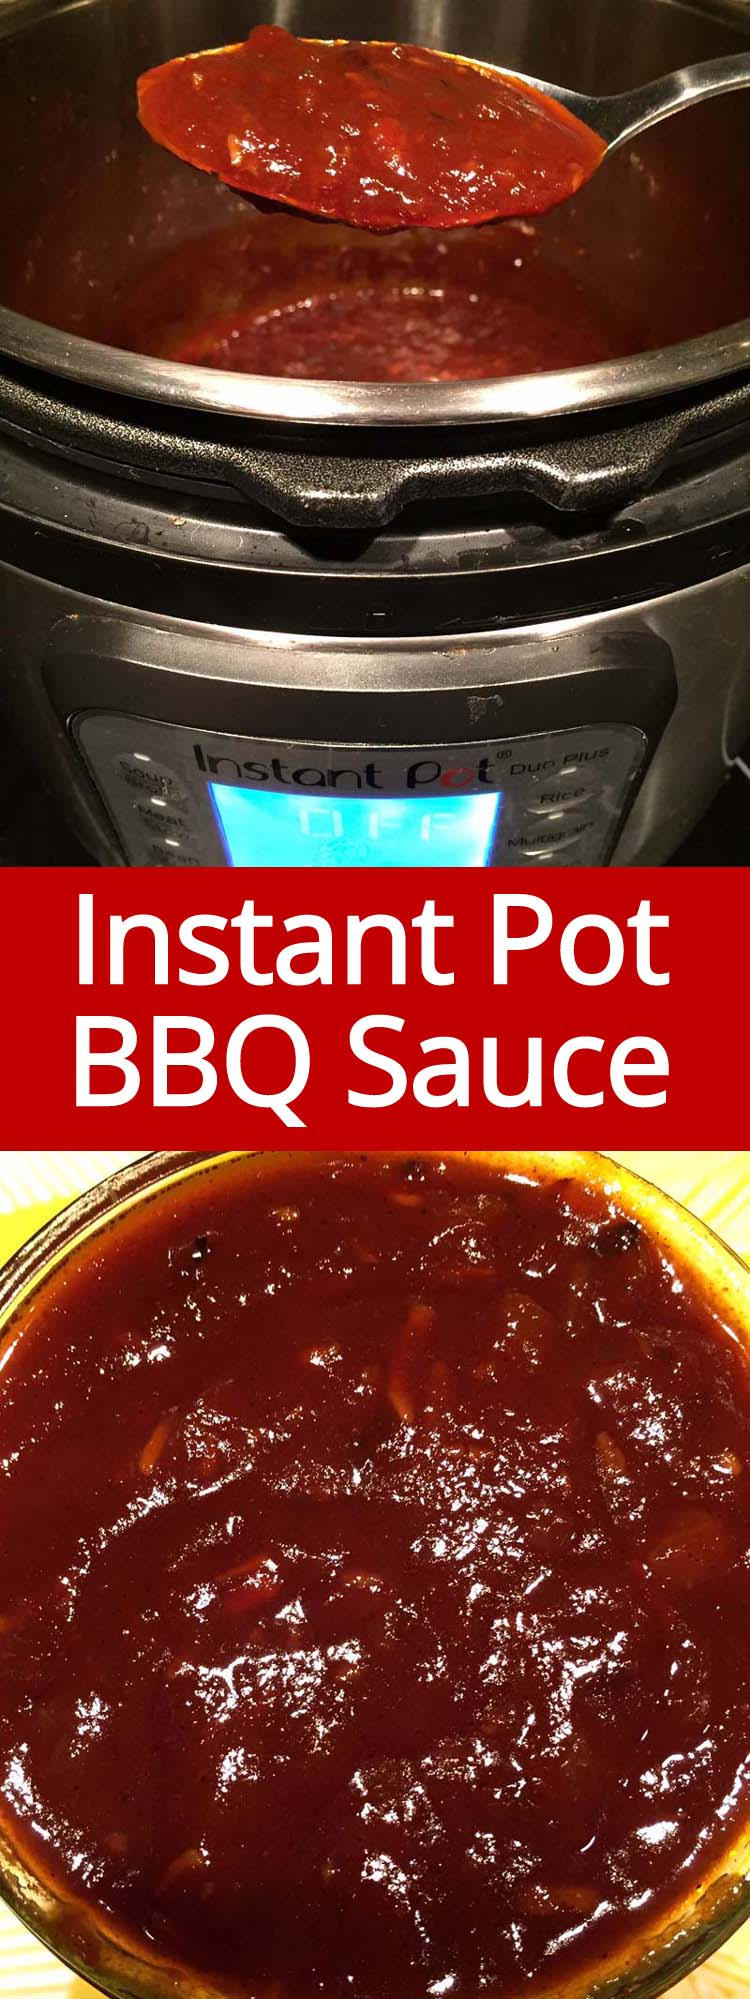 This Instant Pot BBQ sauce is amazing! Once you try homemade barbecue sauce, you'll never want to have the bottled one ever again!  It's so easy to make in the Instant Pot!